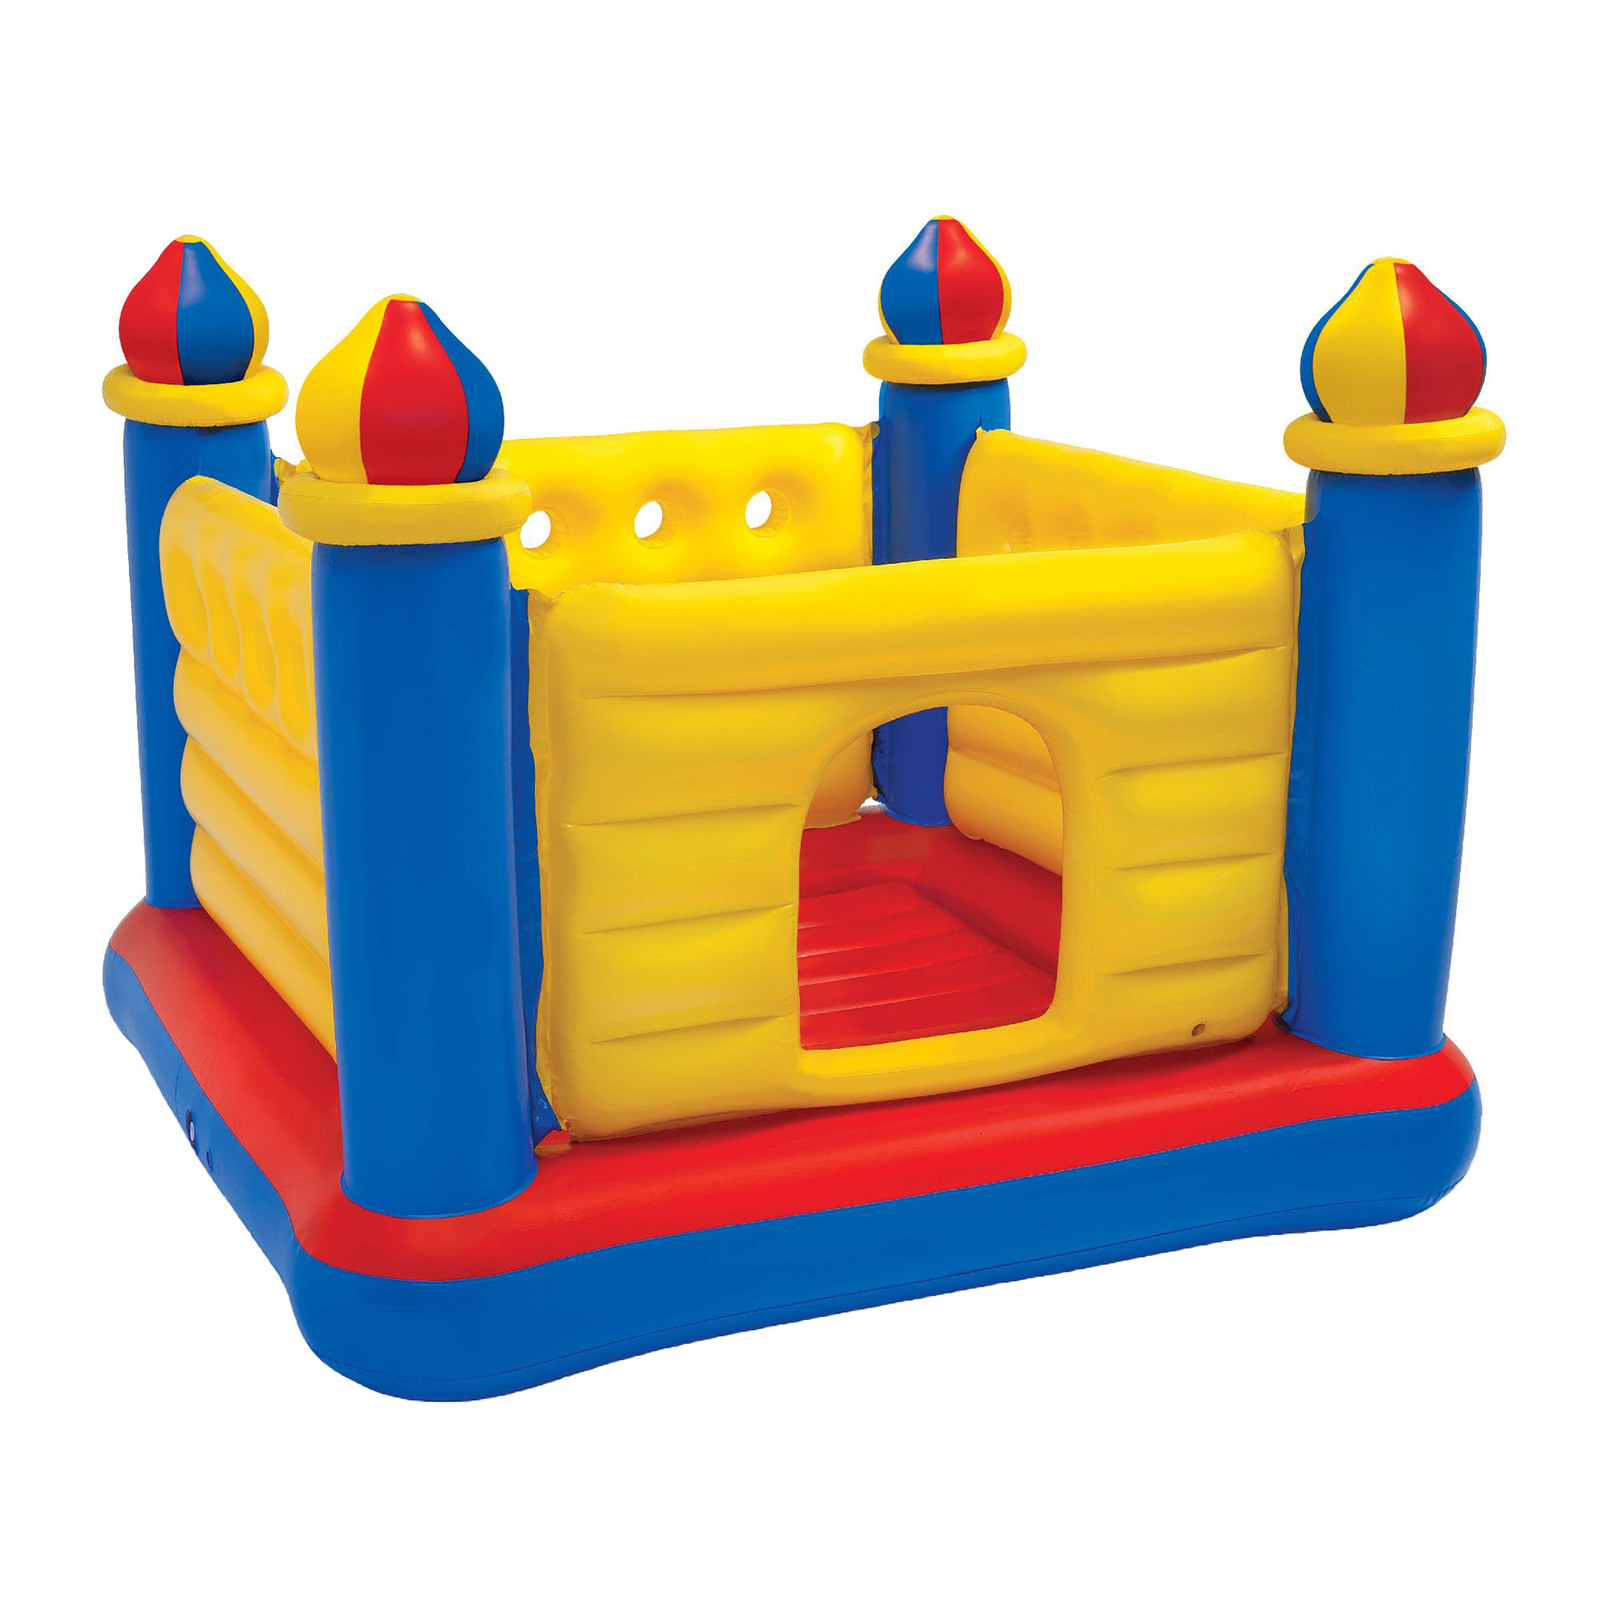 Kids Toddlers Inflatable Castle Jumping Bouncer Ages 3 - 6 Max Weight 120lbs.... - $140.00